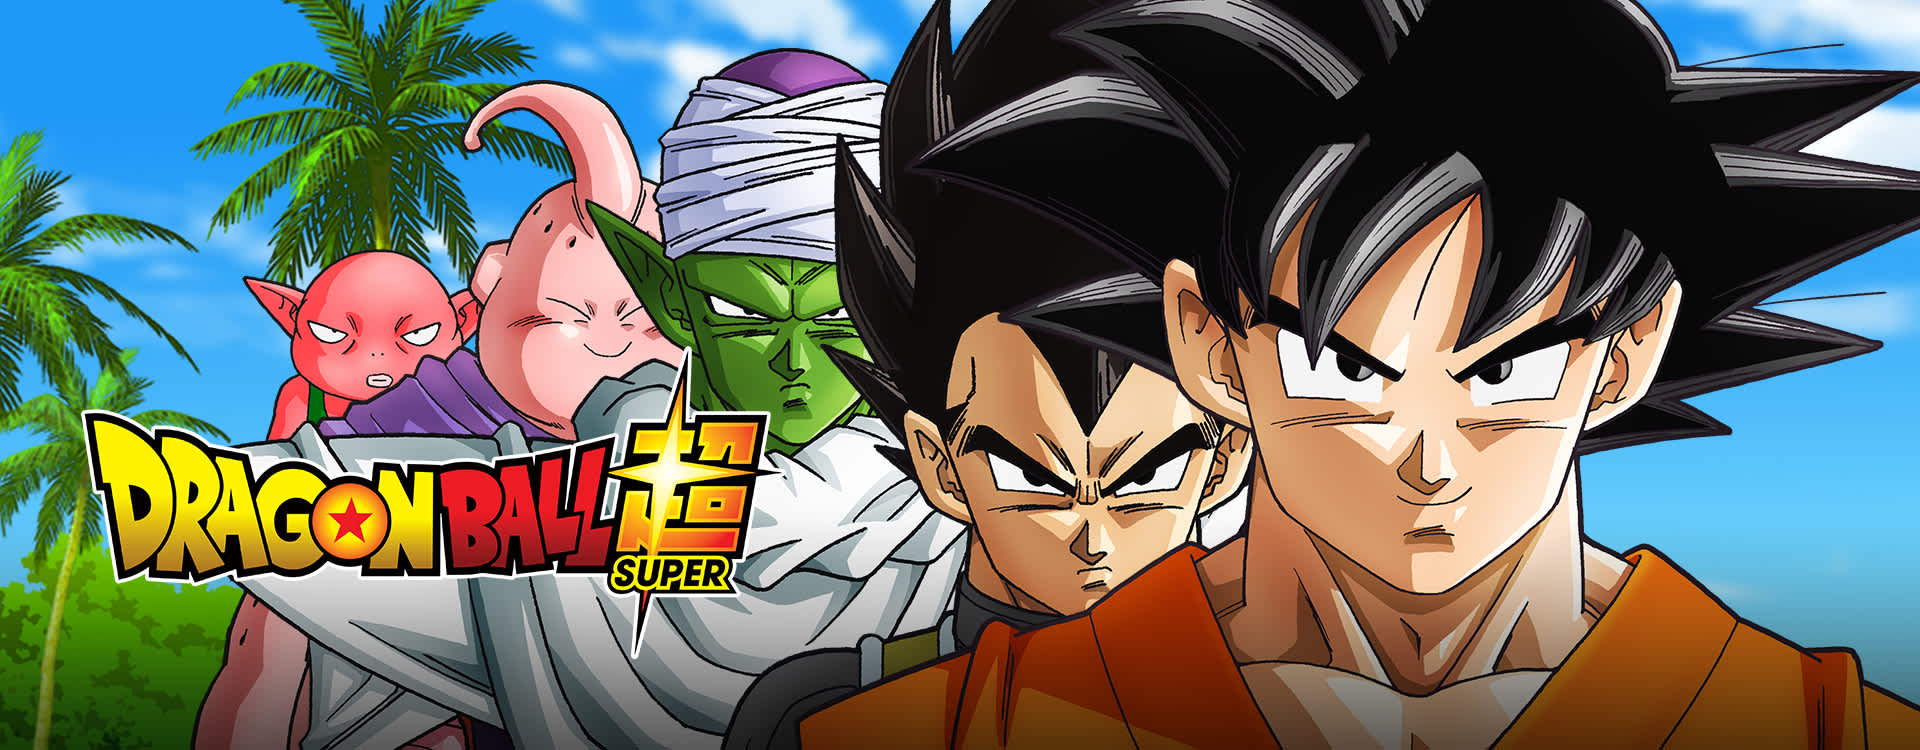 Dragon Ball Super Stream Eng Sub